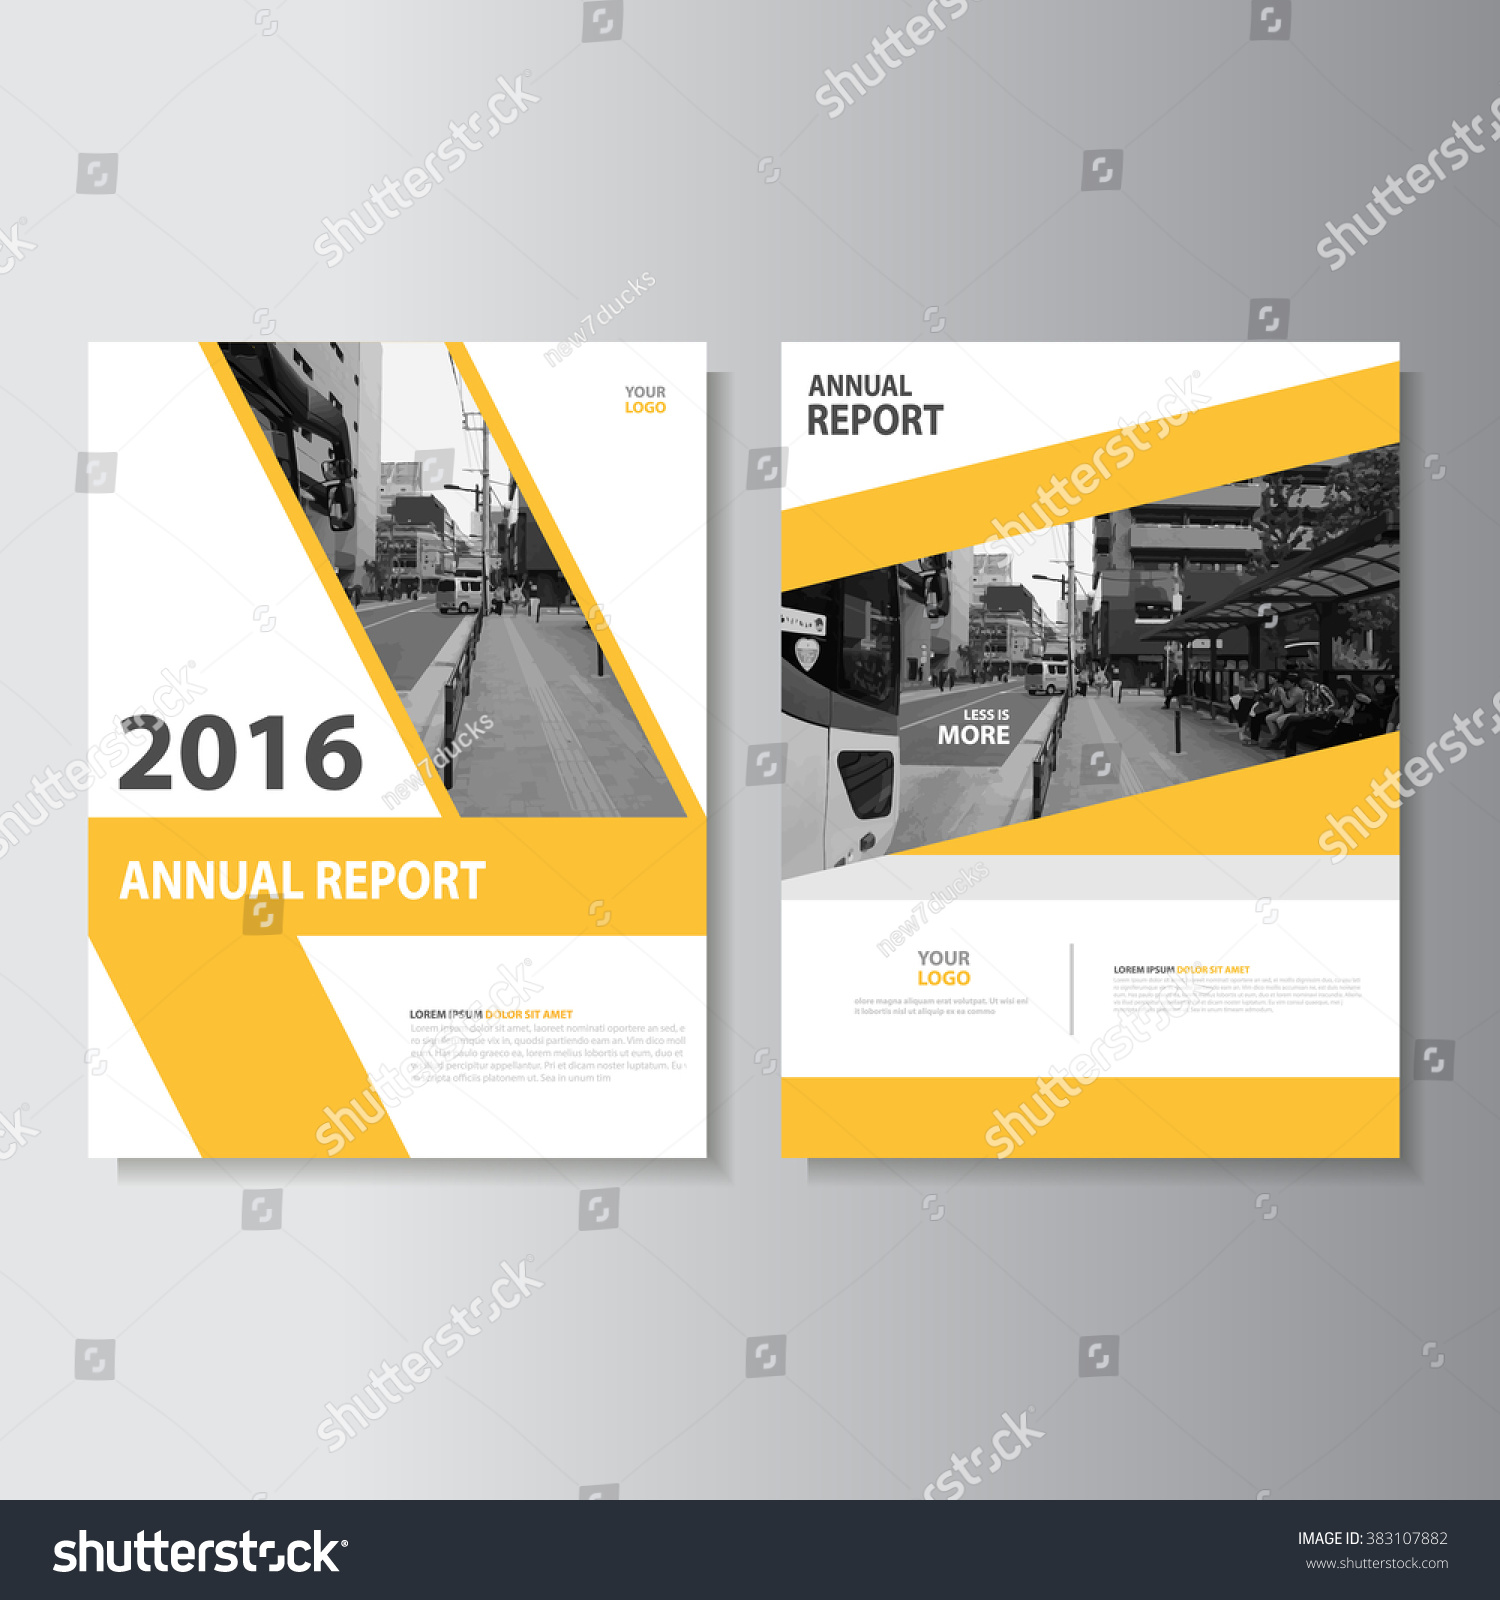 book report brochure template - yellow annual report leaflet brochure flyer template a4